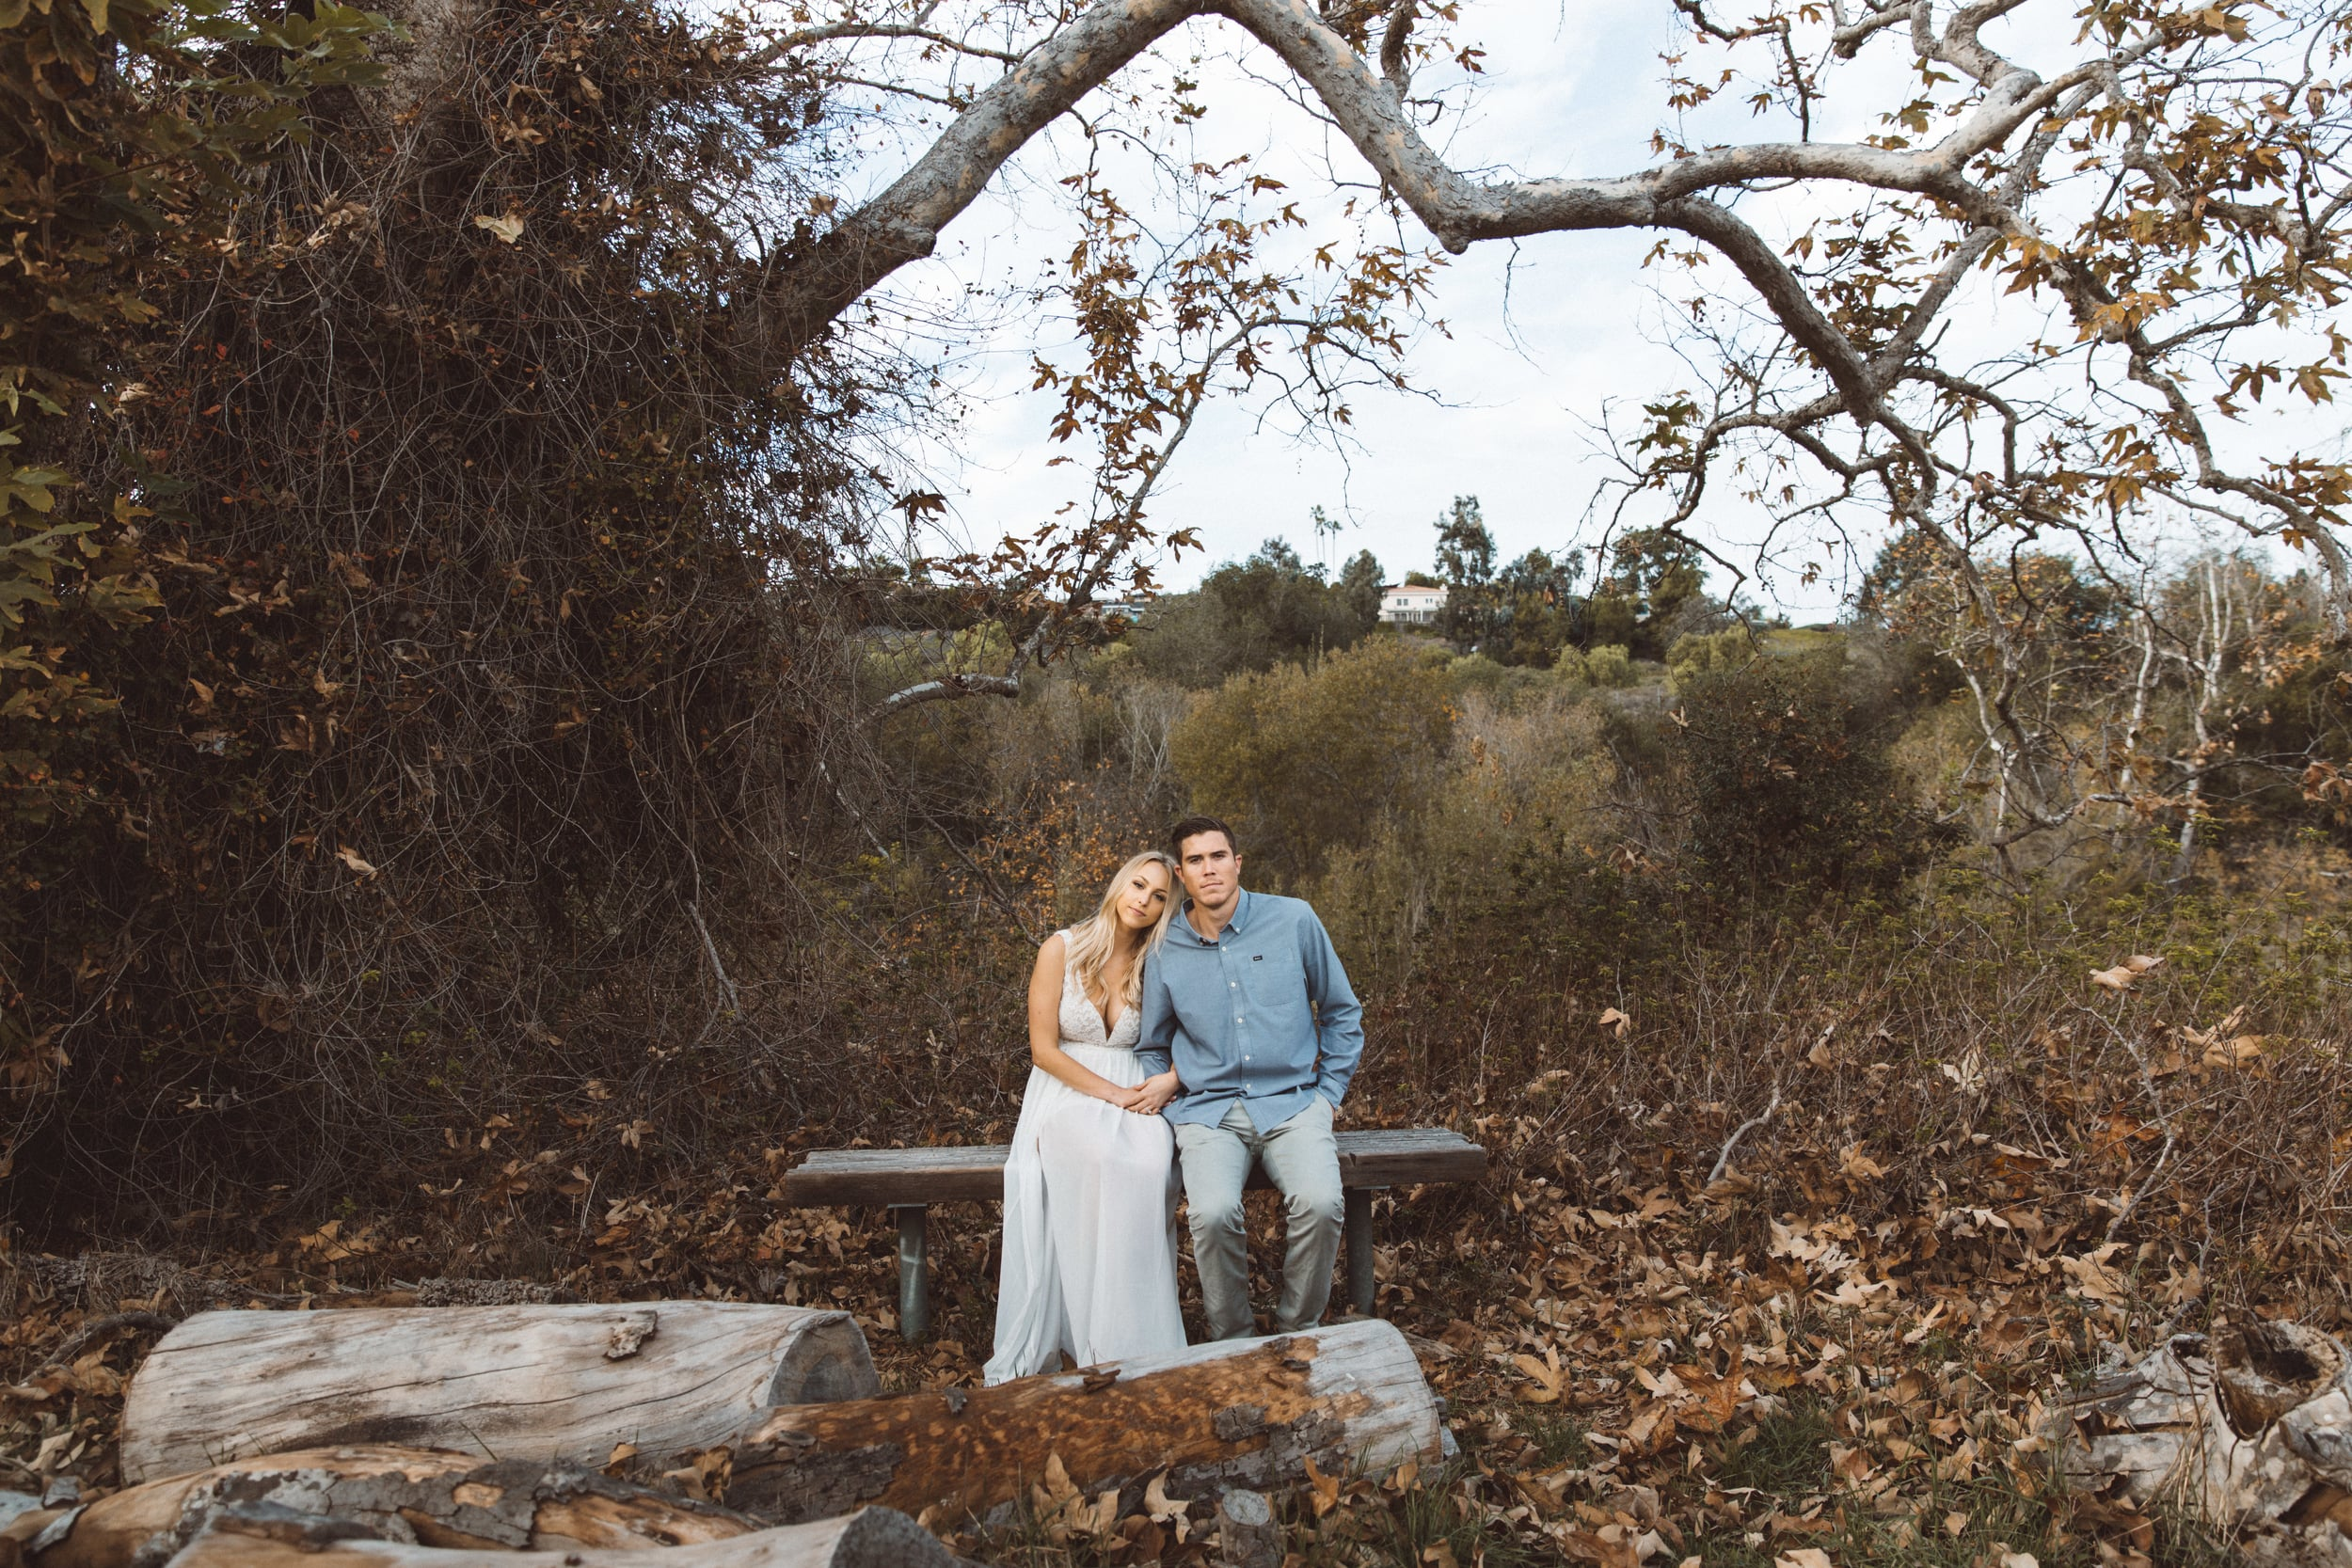 engagement_sandiego_california_love_aliciachandler_kaeli_shane-26.jpg